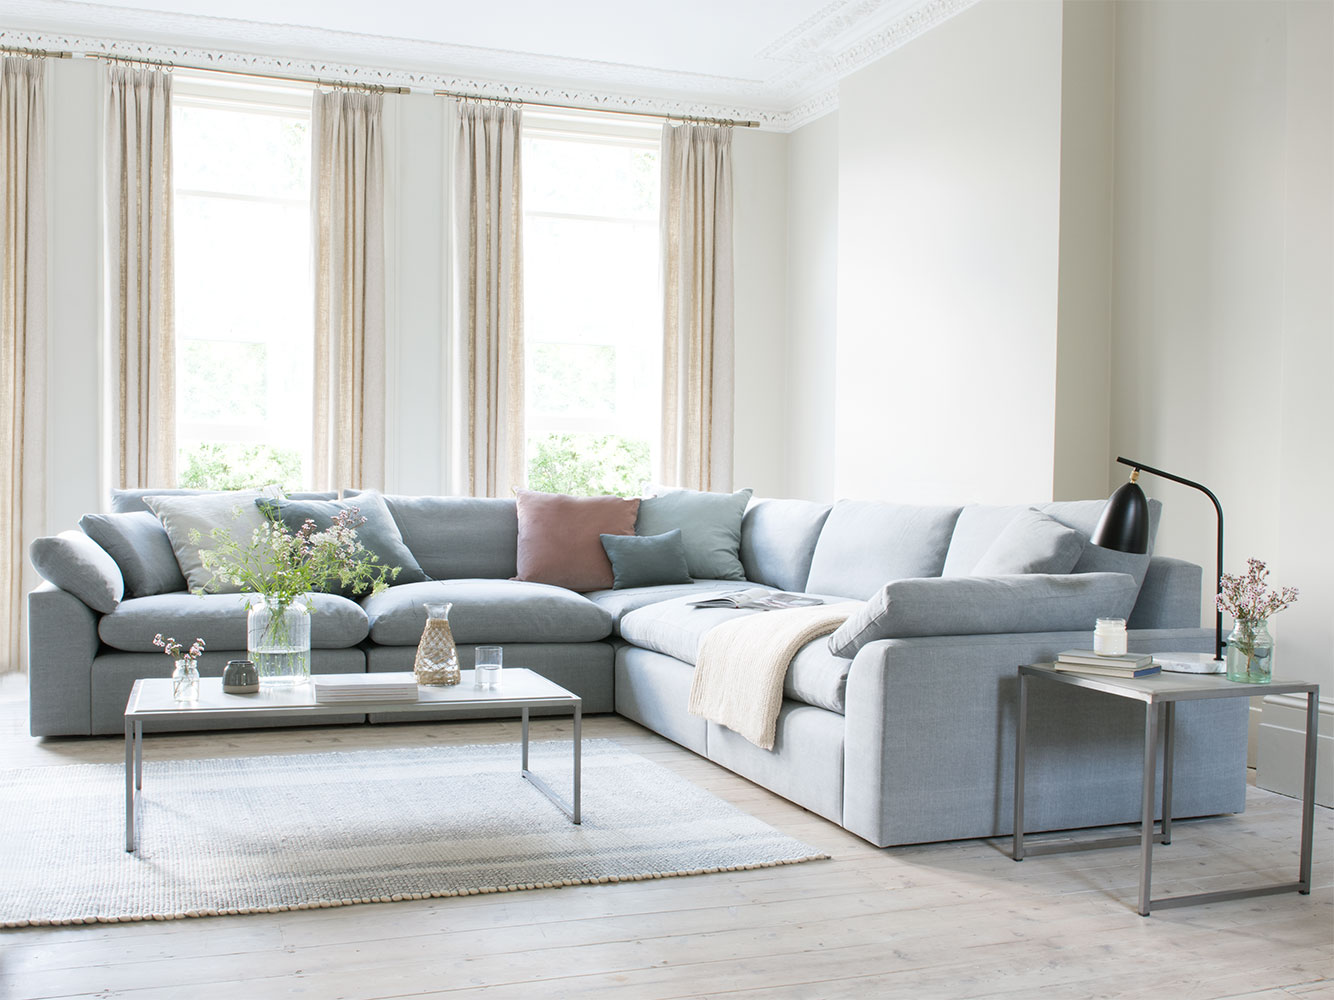 cuddle muffin sectional sofa